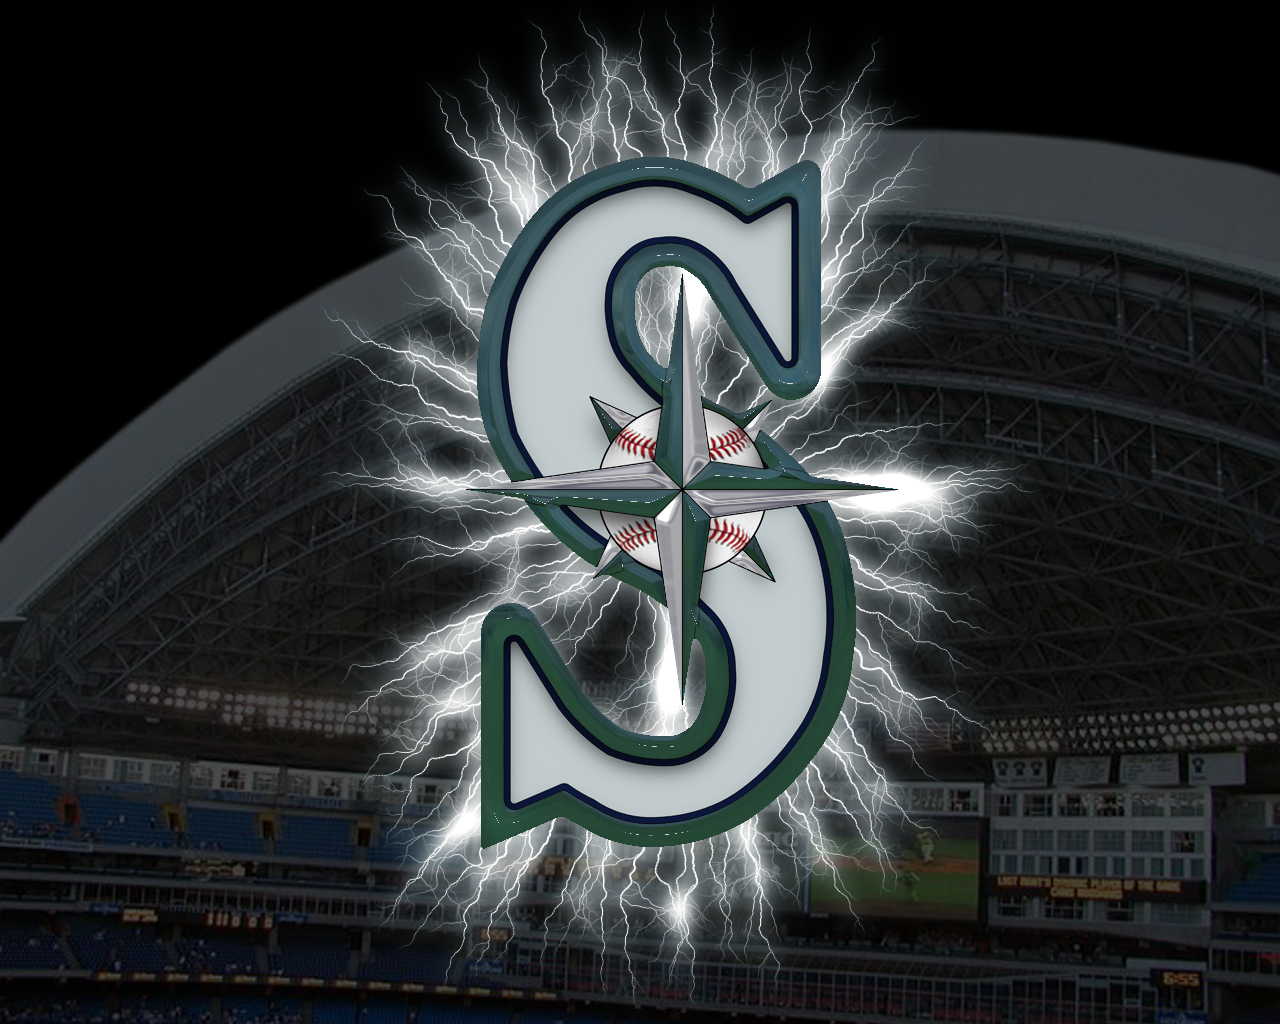 Seattle Mariners wallpaper 1280x1024 73417 1280x1024